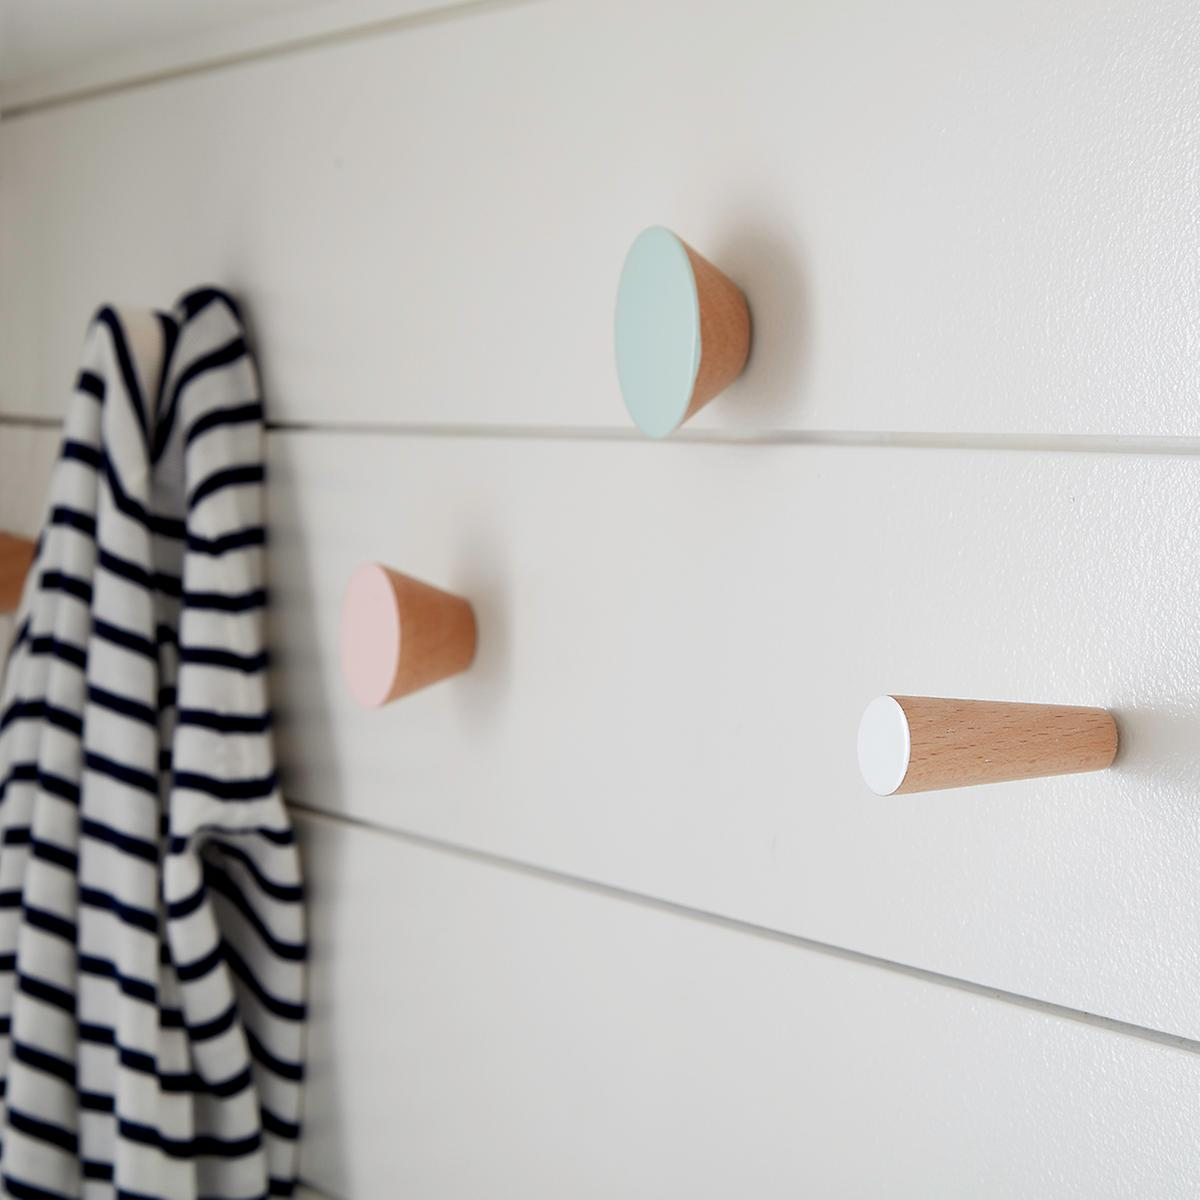 Three by Three Pastel Hob Knob Solid Wood Wall Pegs